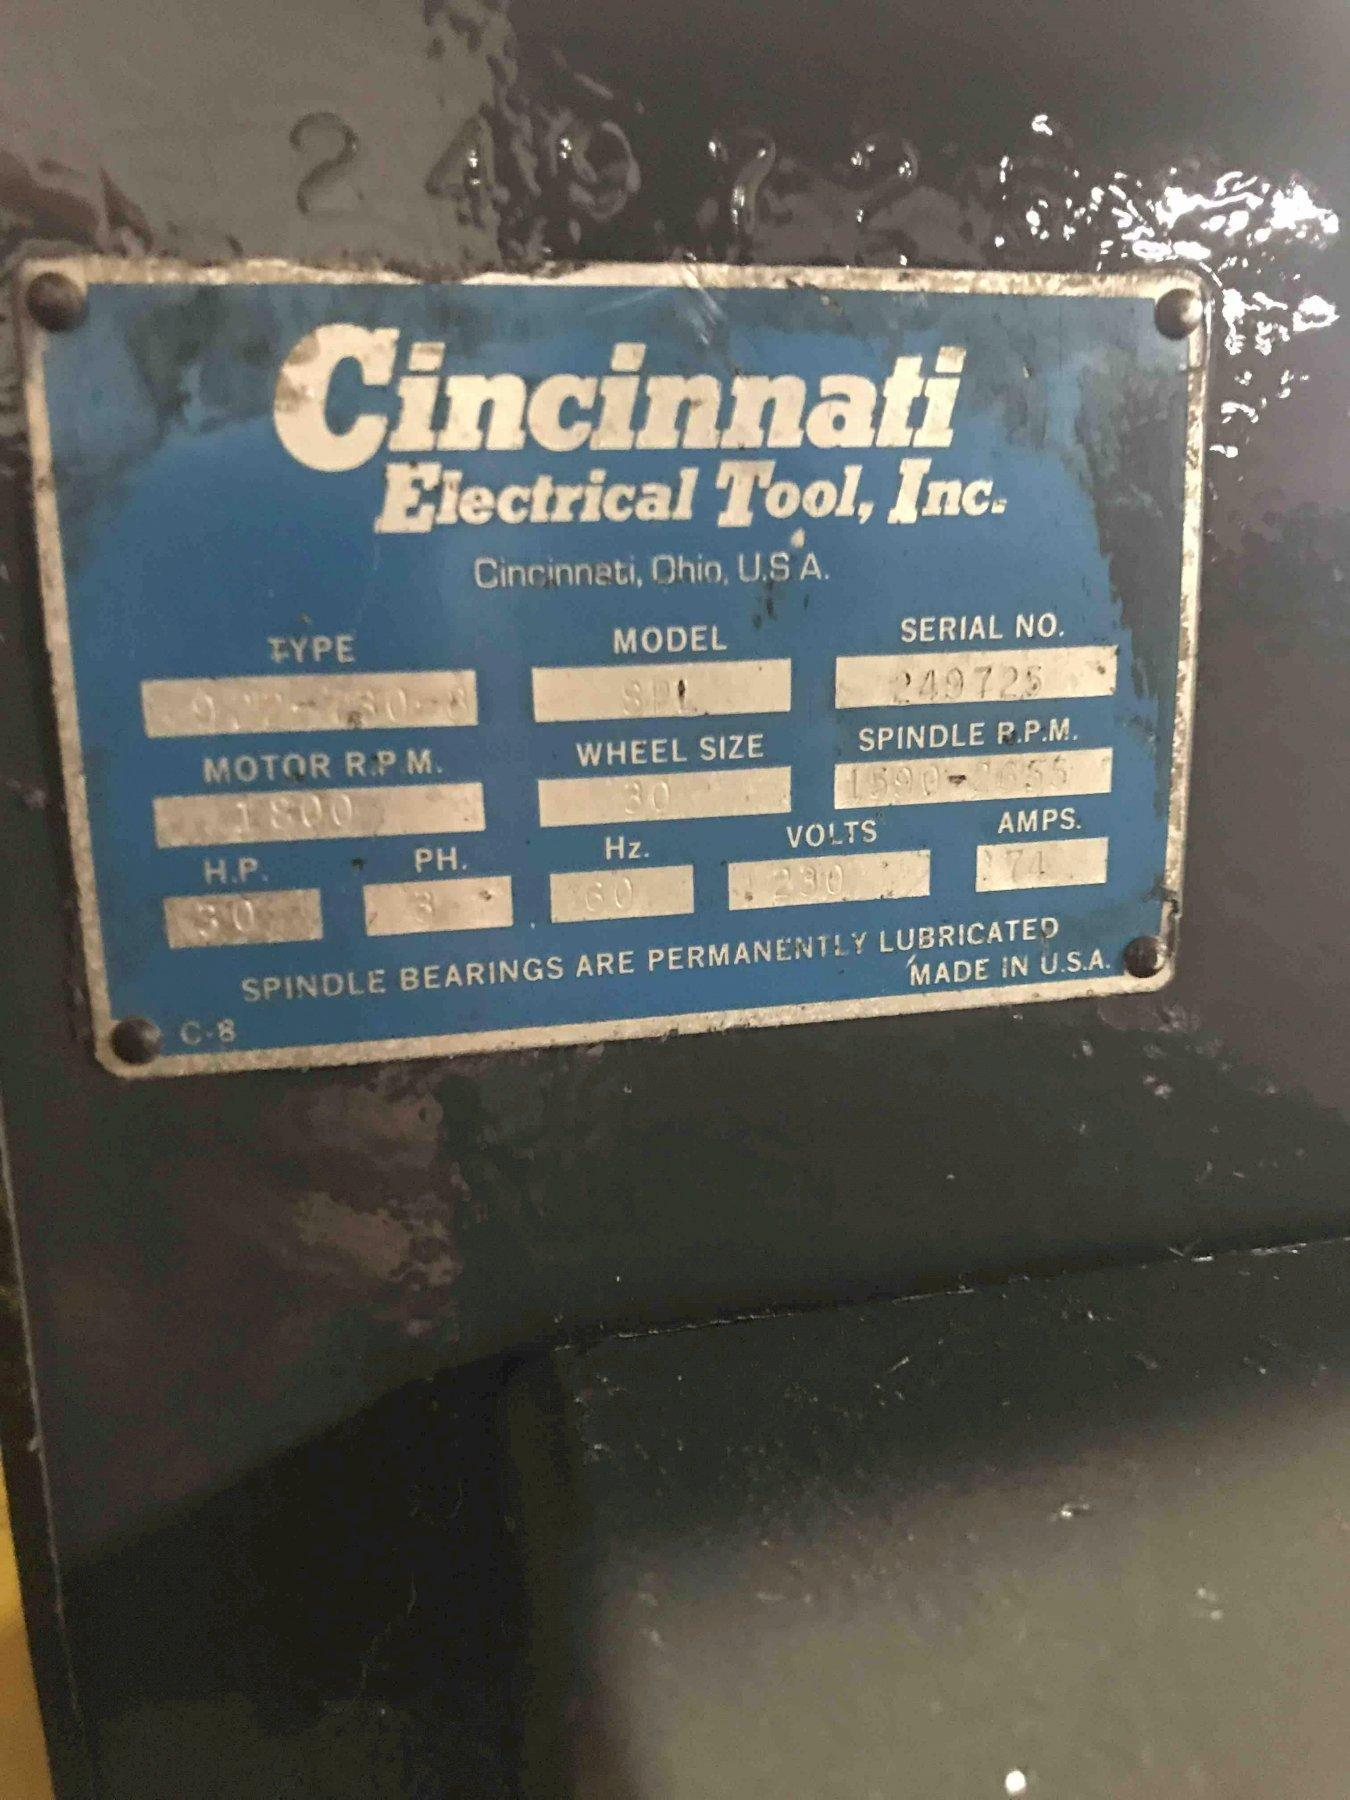 RECONDITIONED CINCINNATI SETCO 922-525 MODEL 300 SINGLE END VARIABLE SPEED RIGHT HAND SNAG GRINDER S/N 249725 WITH 30HP MOTOR, STARTER